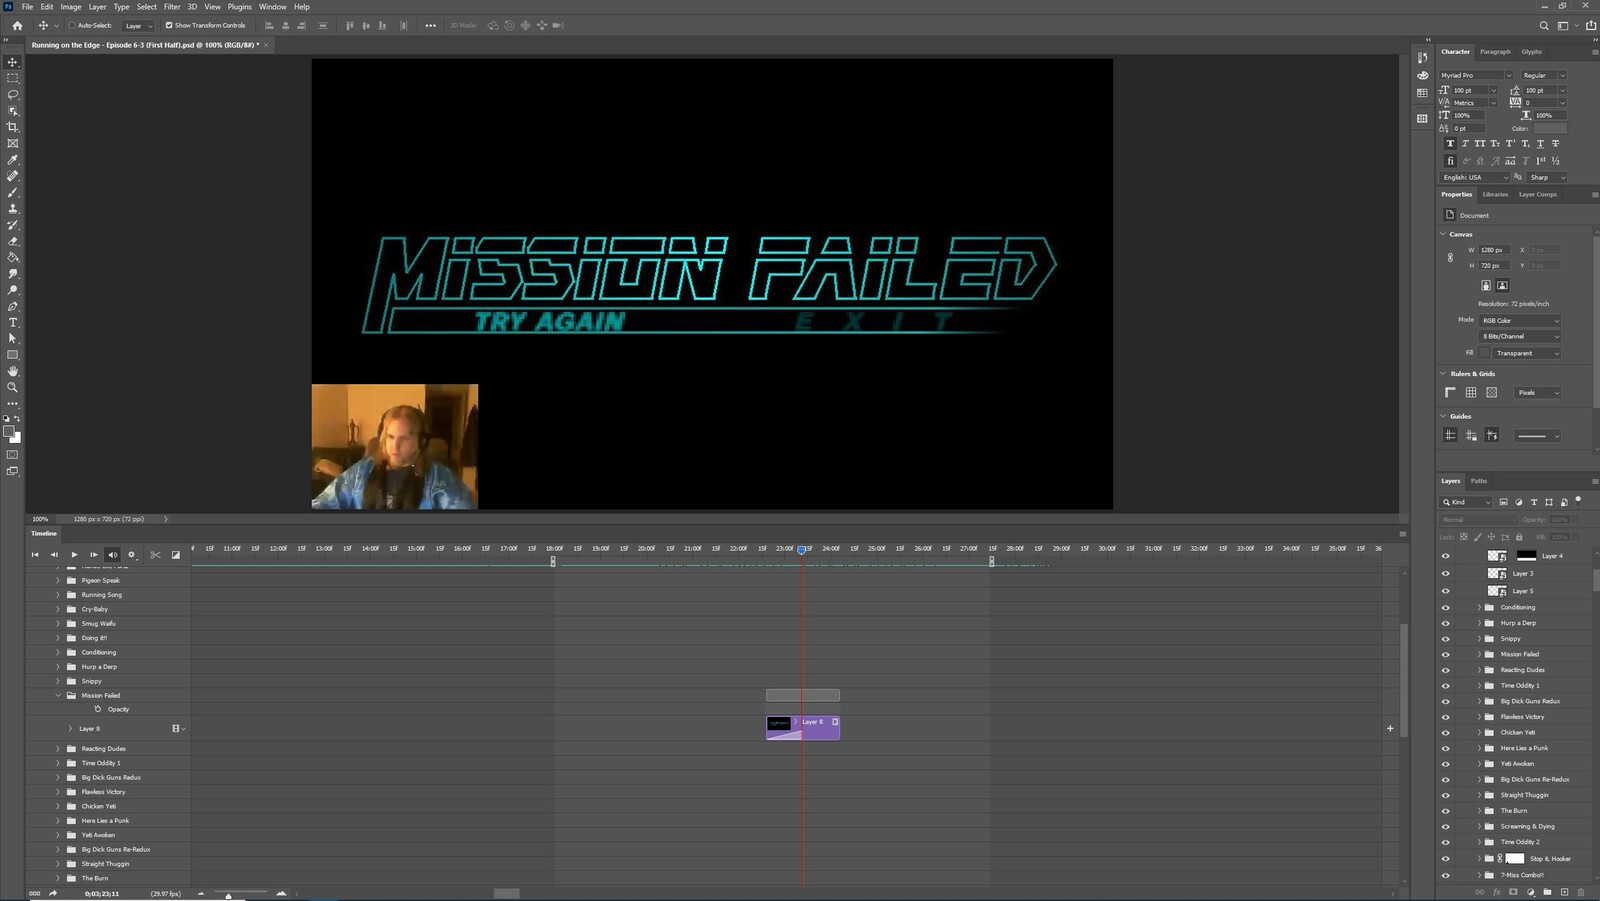 """The """"Gettin a Snippy, Part 2"""" visual effect within Photoshop video editor"""